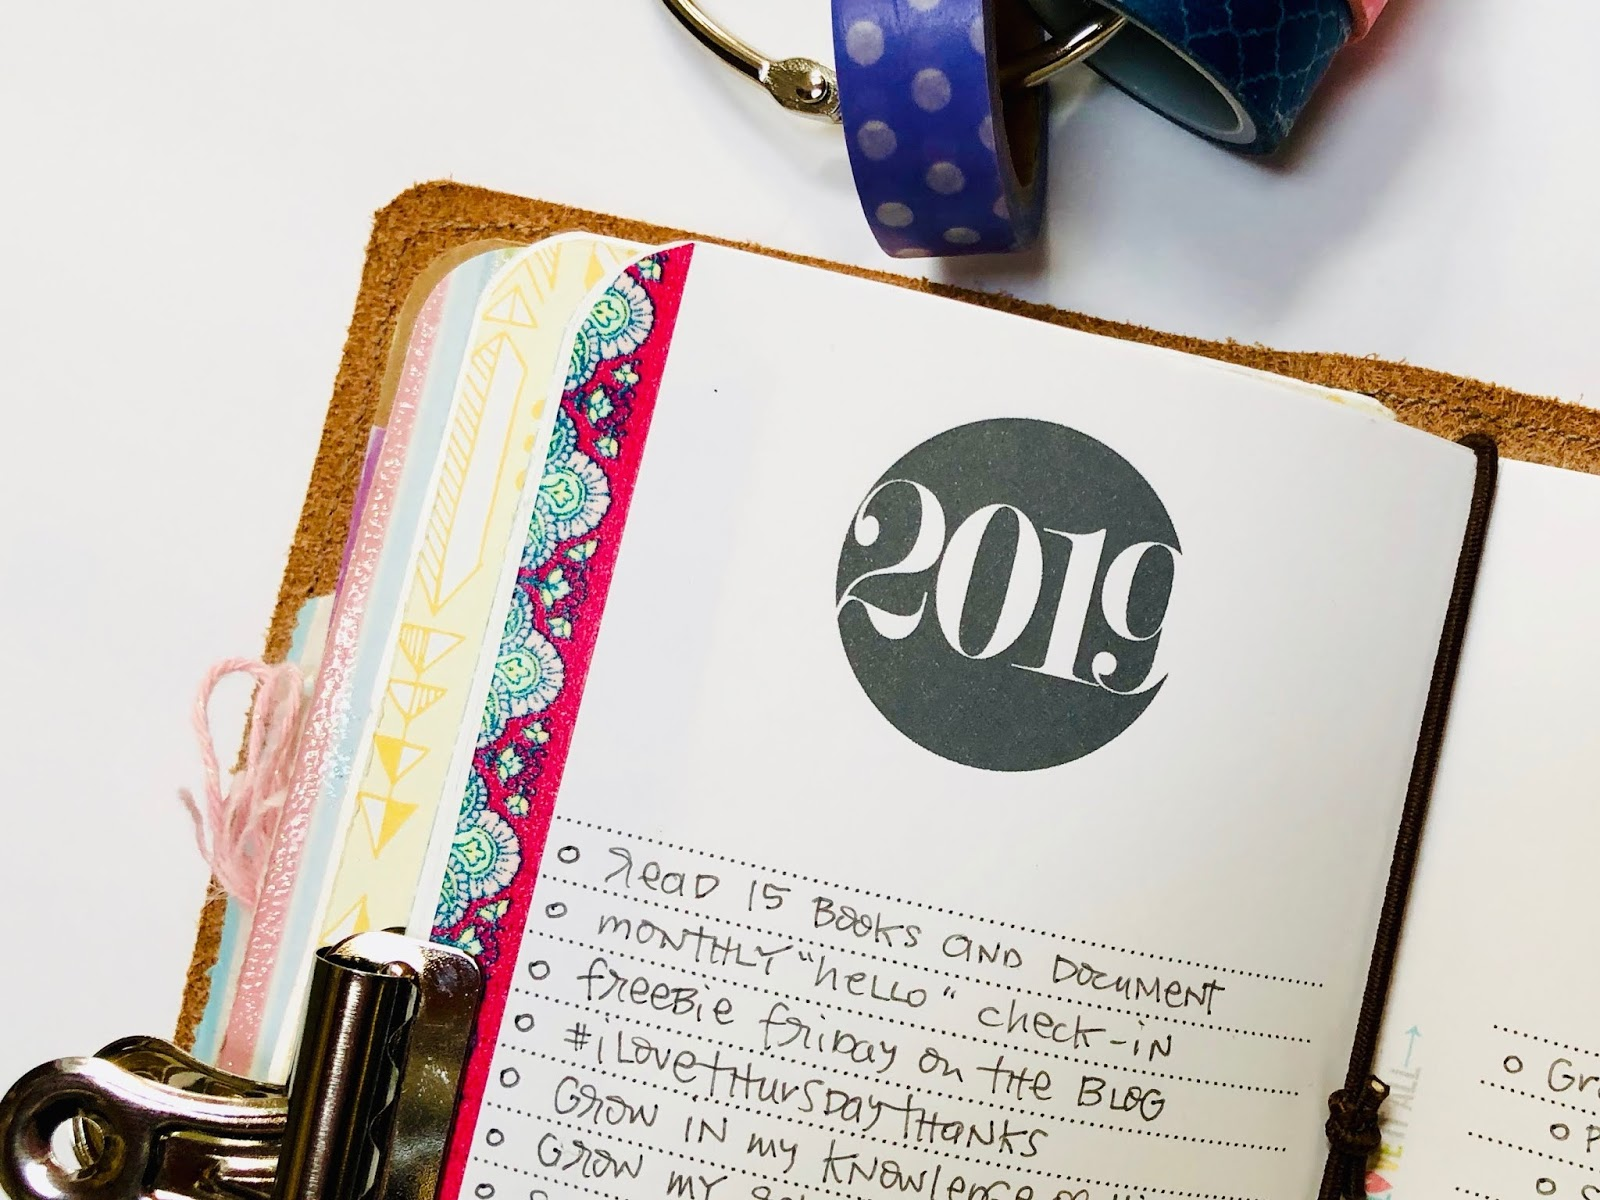 #travelers notebook #goals #goals worksheet #free #printable #download #2019 #midori #A6 #passport #field notes #micro